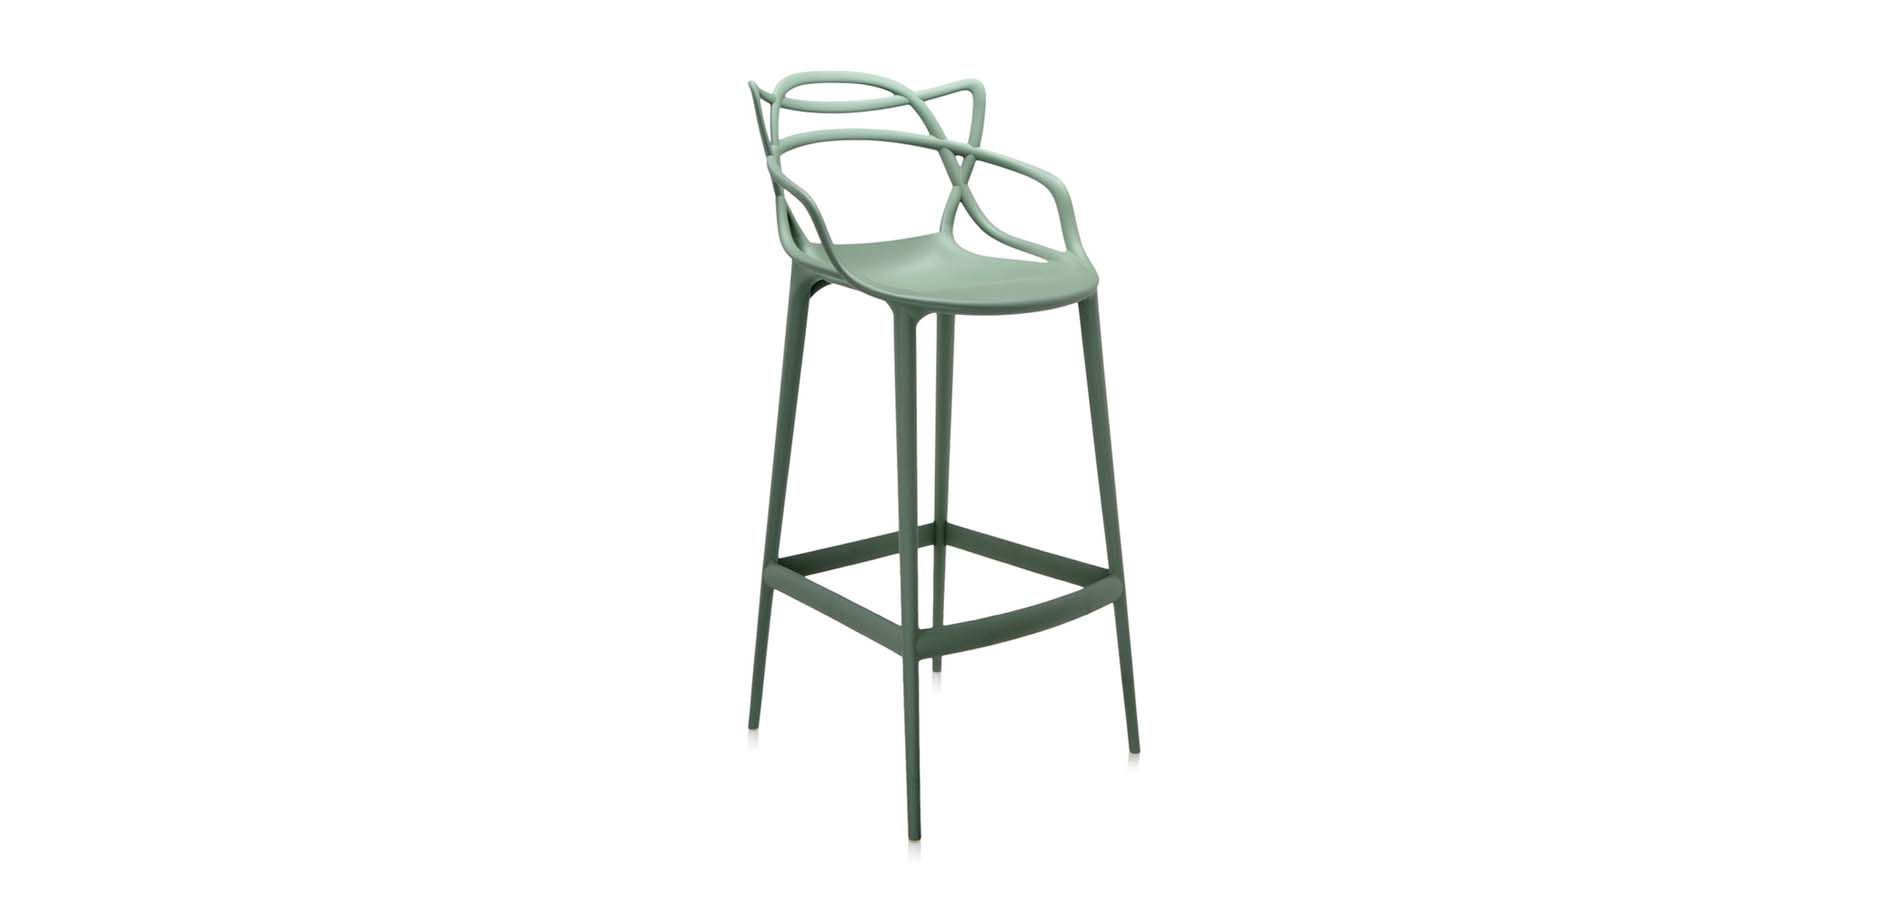 Masters Bar Stool 109 Kartell  : 3 masters kartell bar stool 884 from www.michalopoulos.com.gr size 1903 x 913 jpeg 26kB